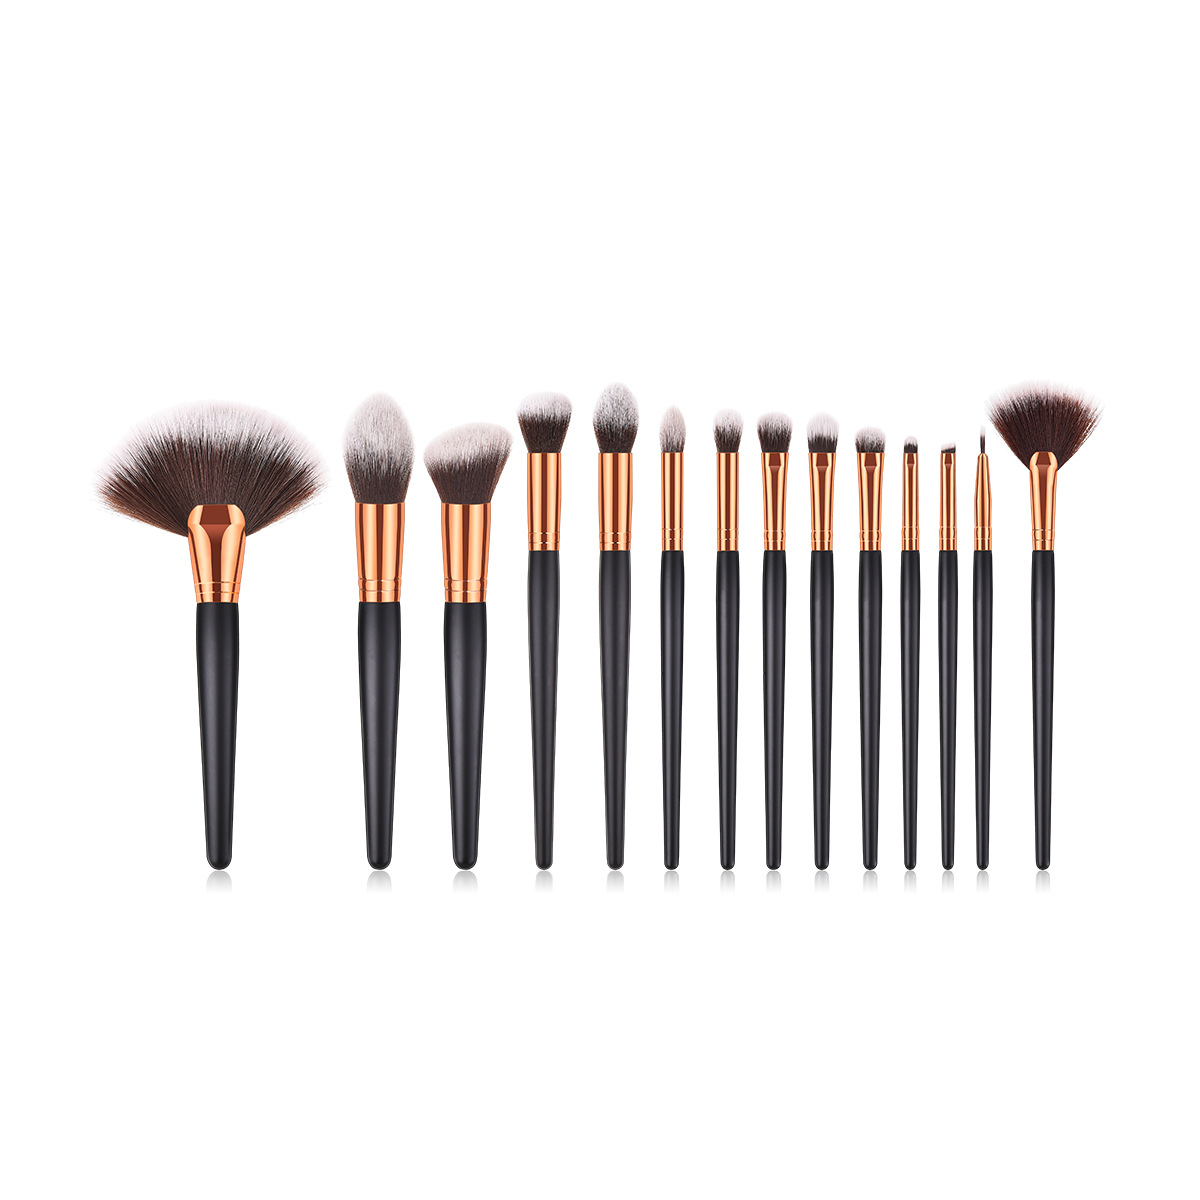 14 pcs makeup brush set MB110